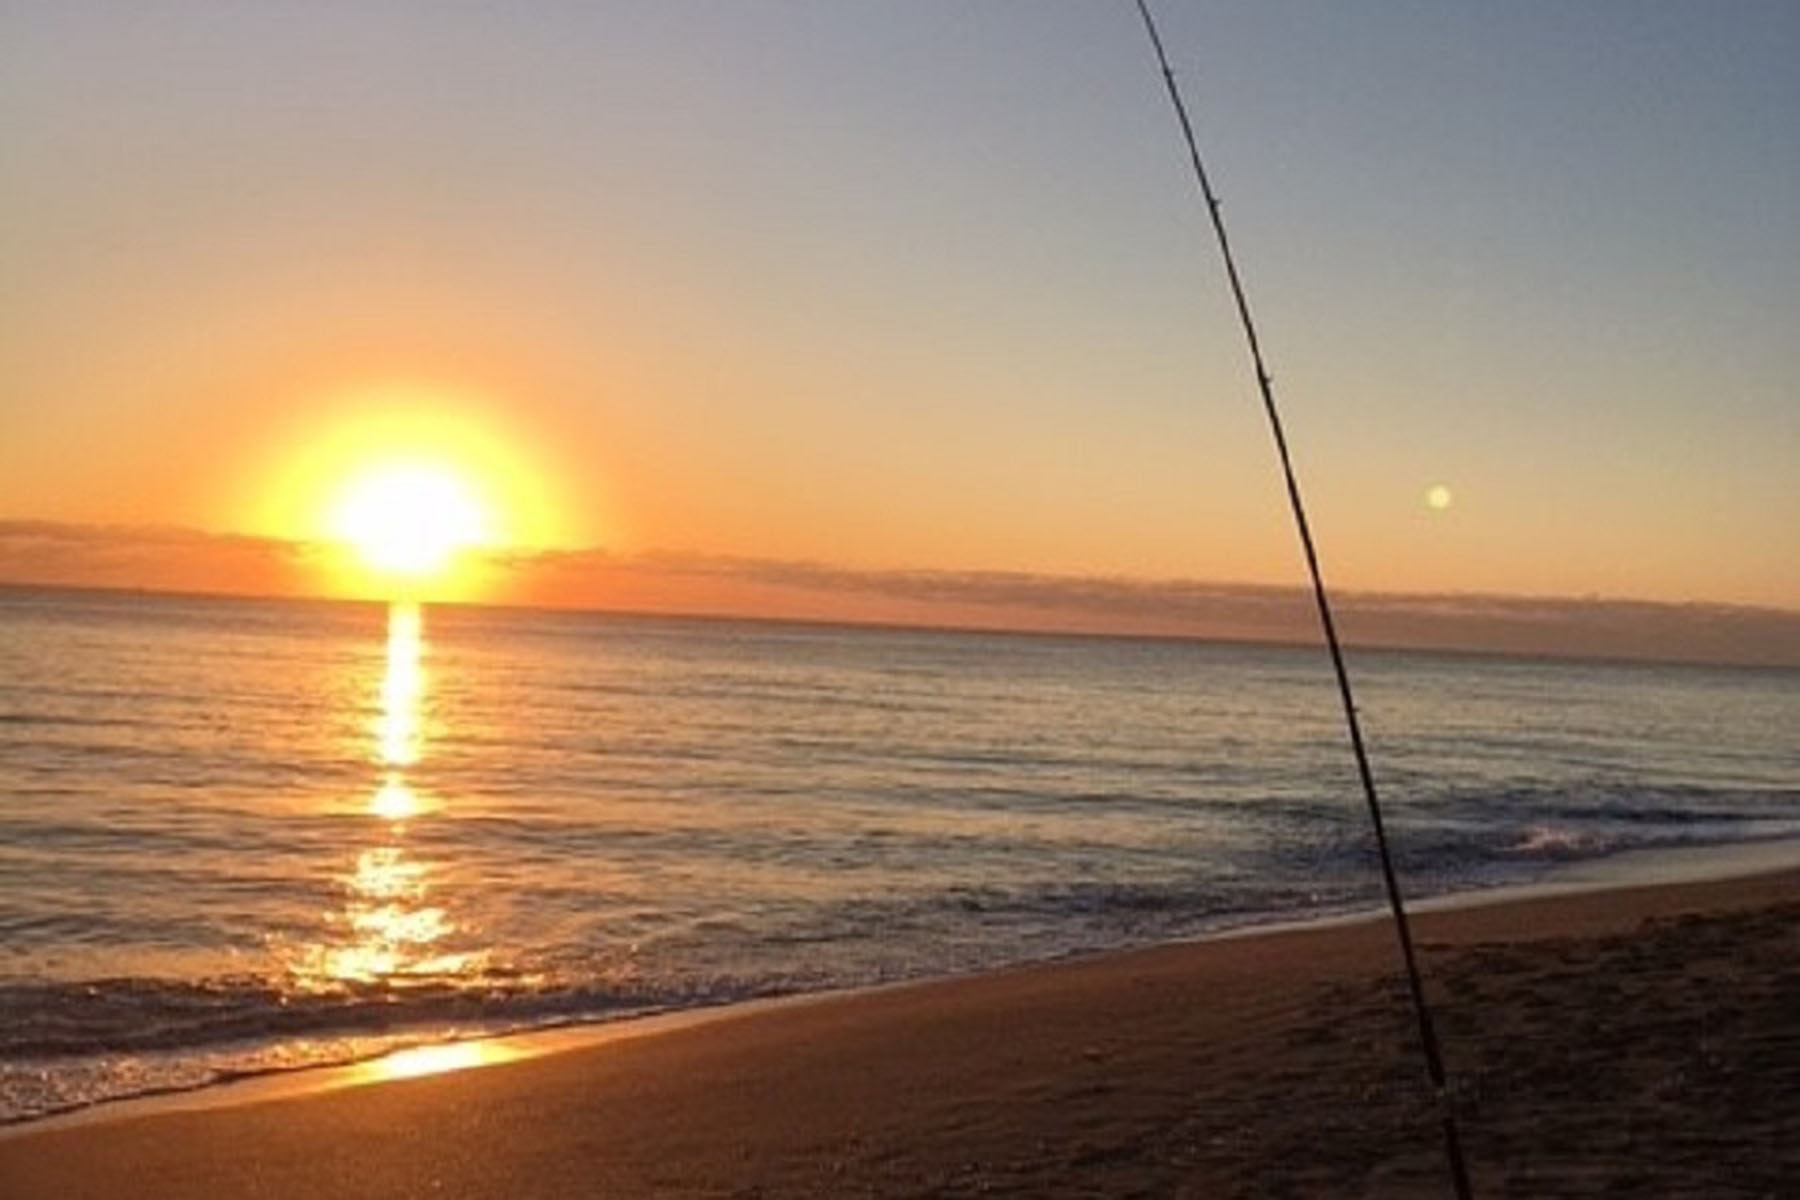 sunrise over the beach with fishing pole in sand